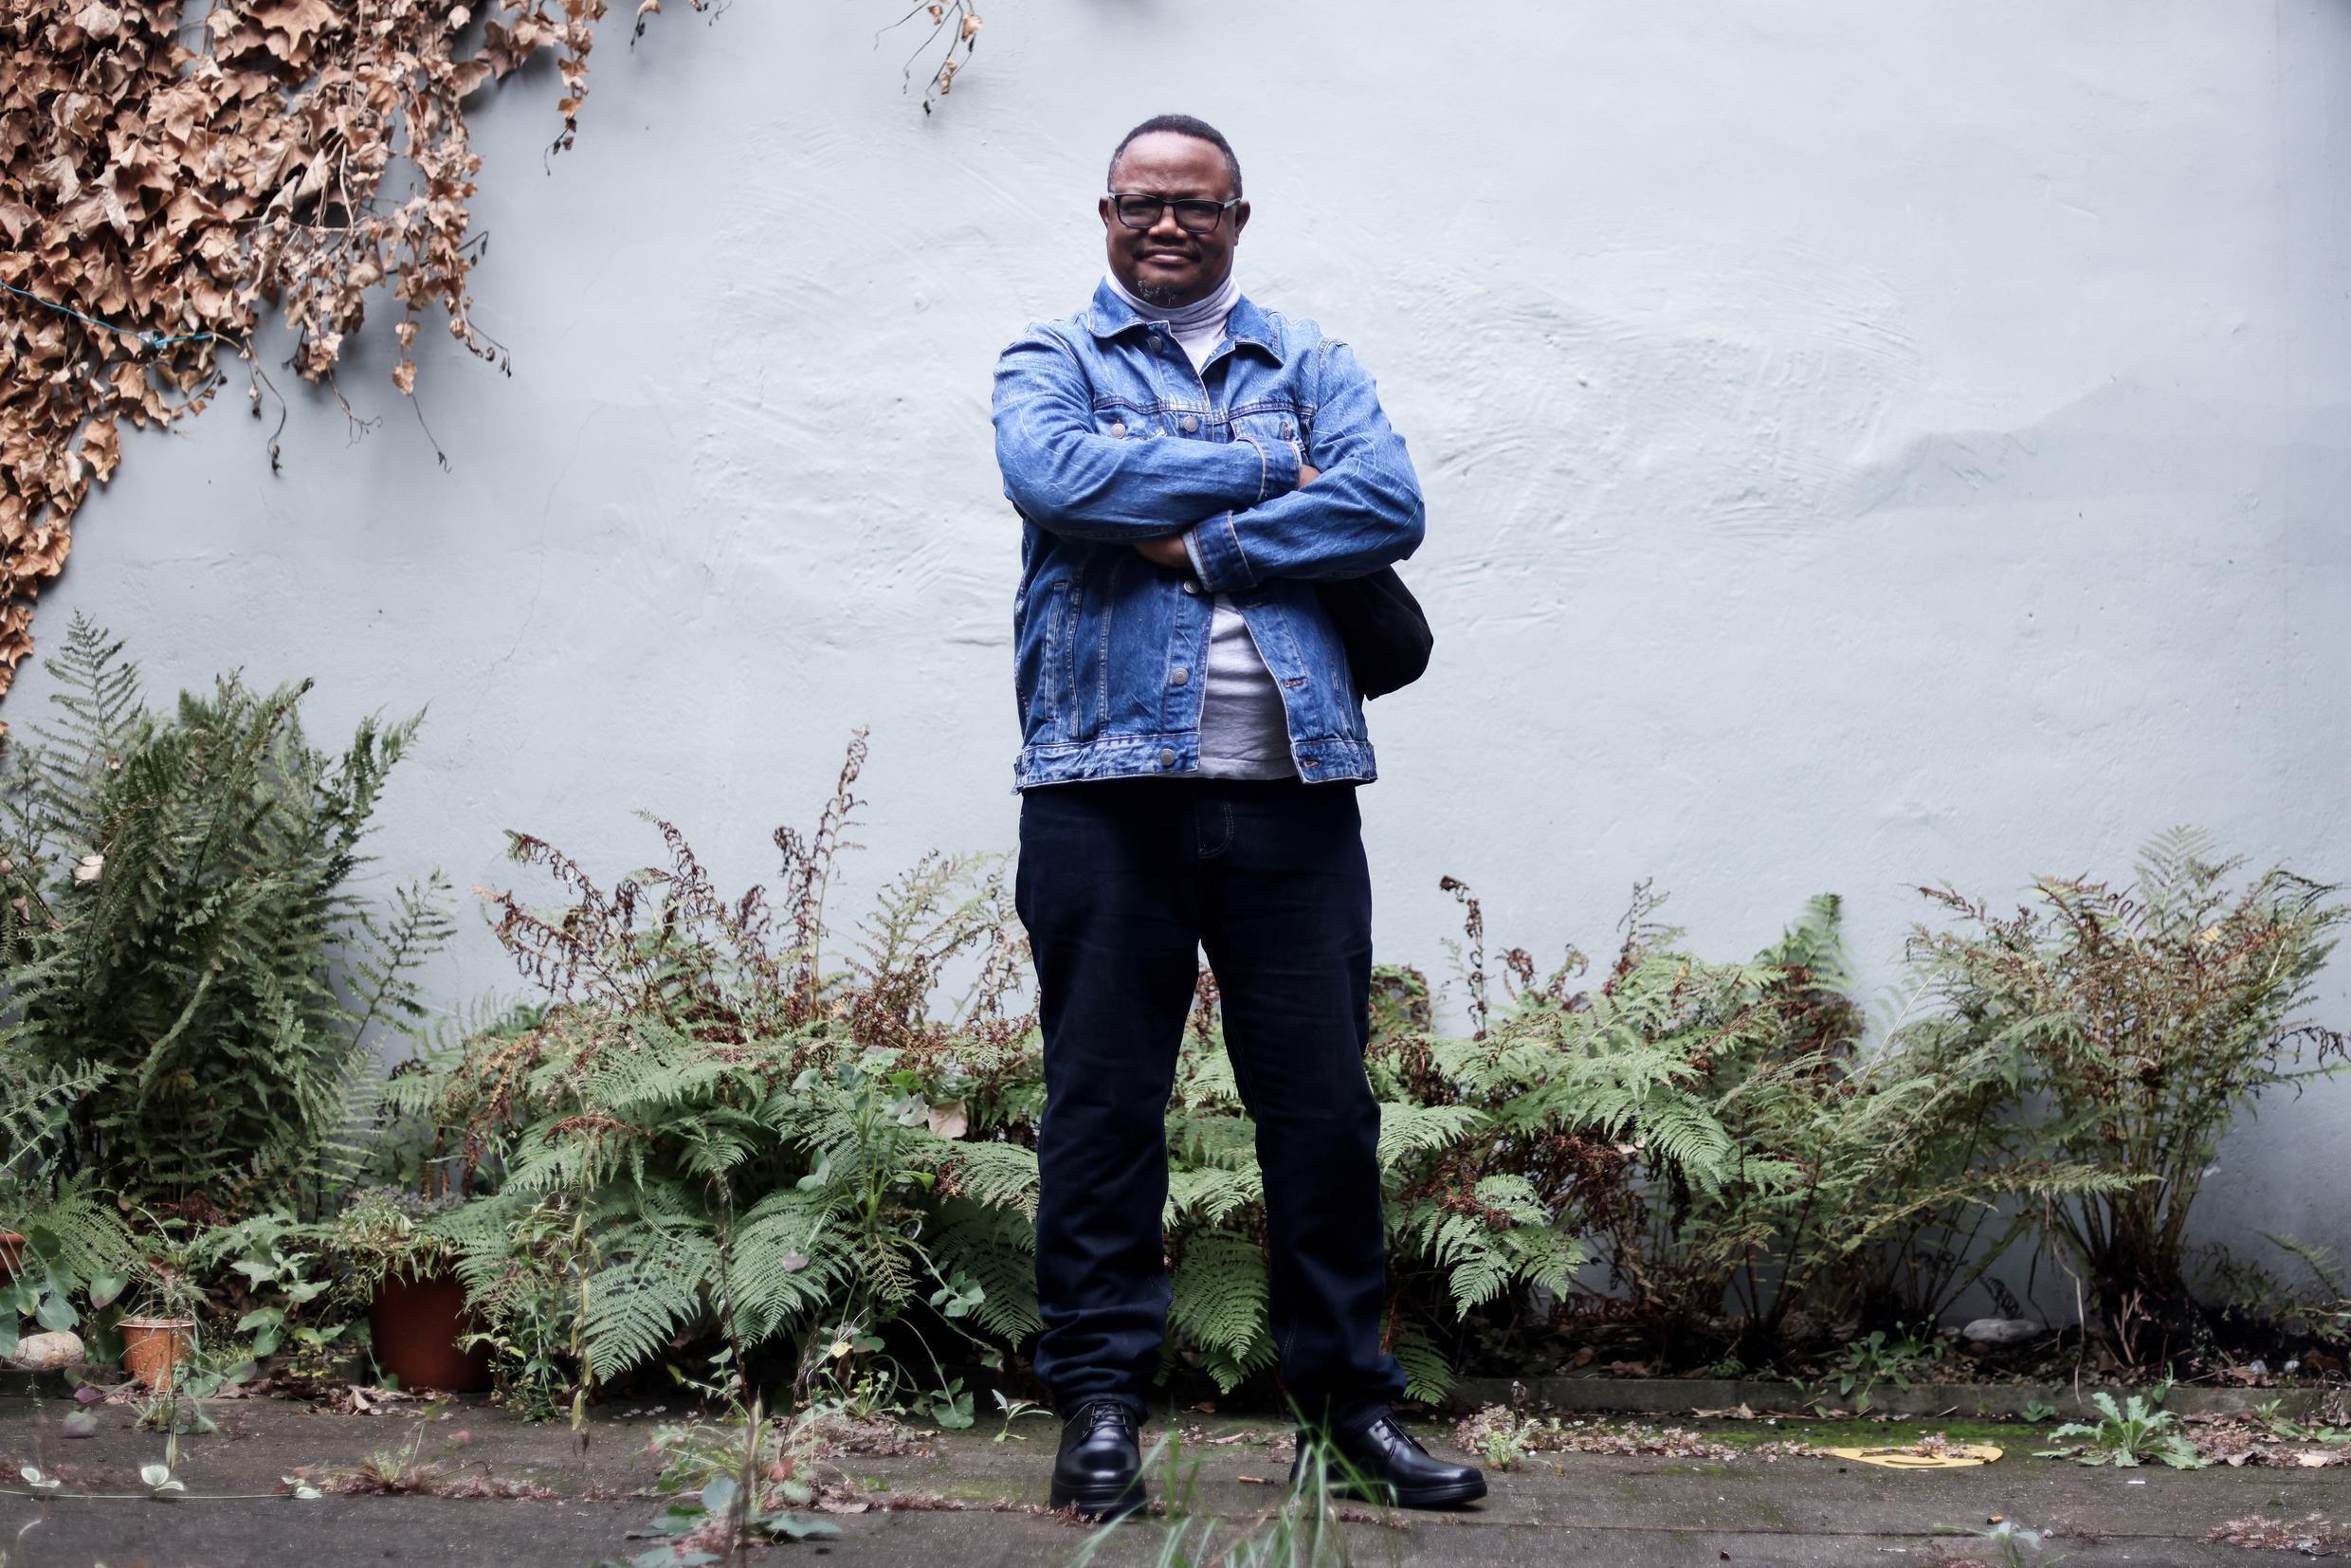 Credible death threats forced Tanzanian opposition leader Tundu Lissu to flee to Belgium after last month's presidential election